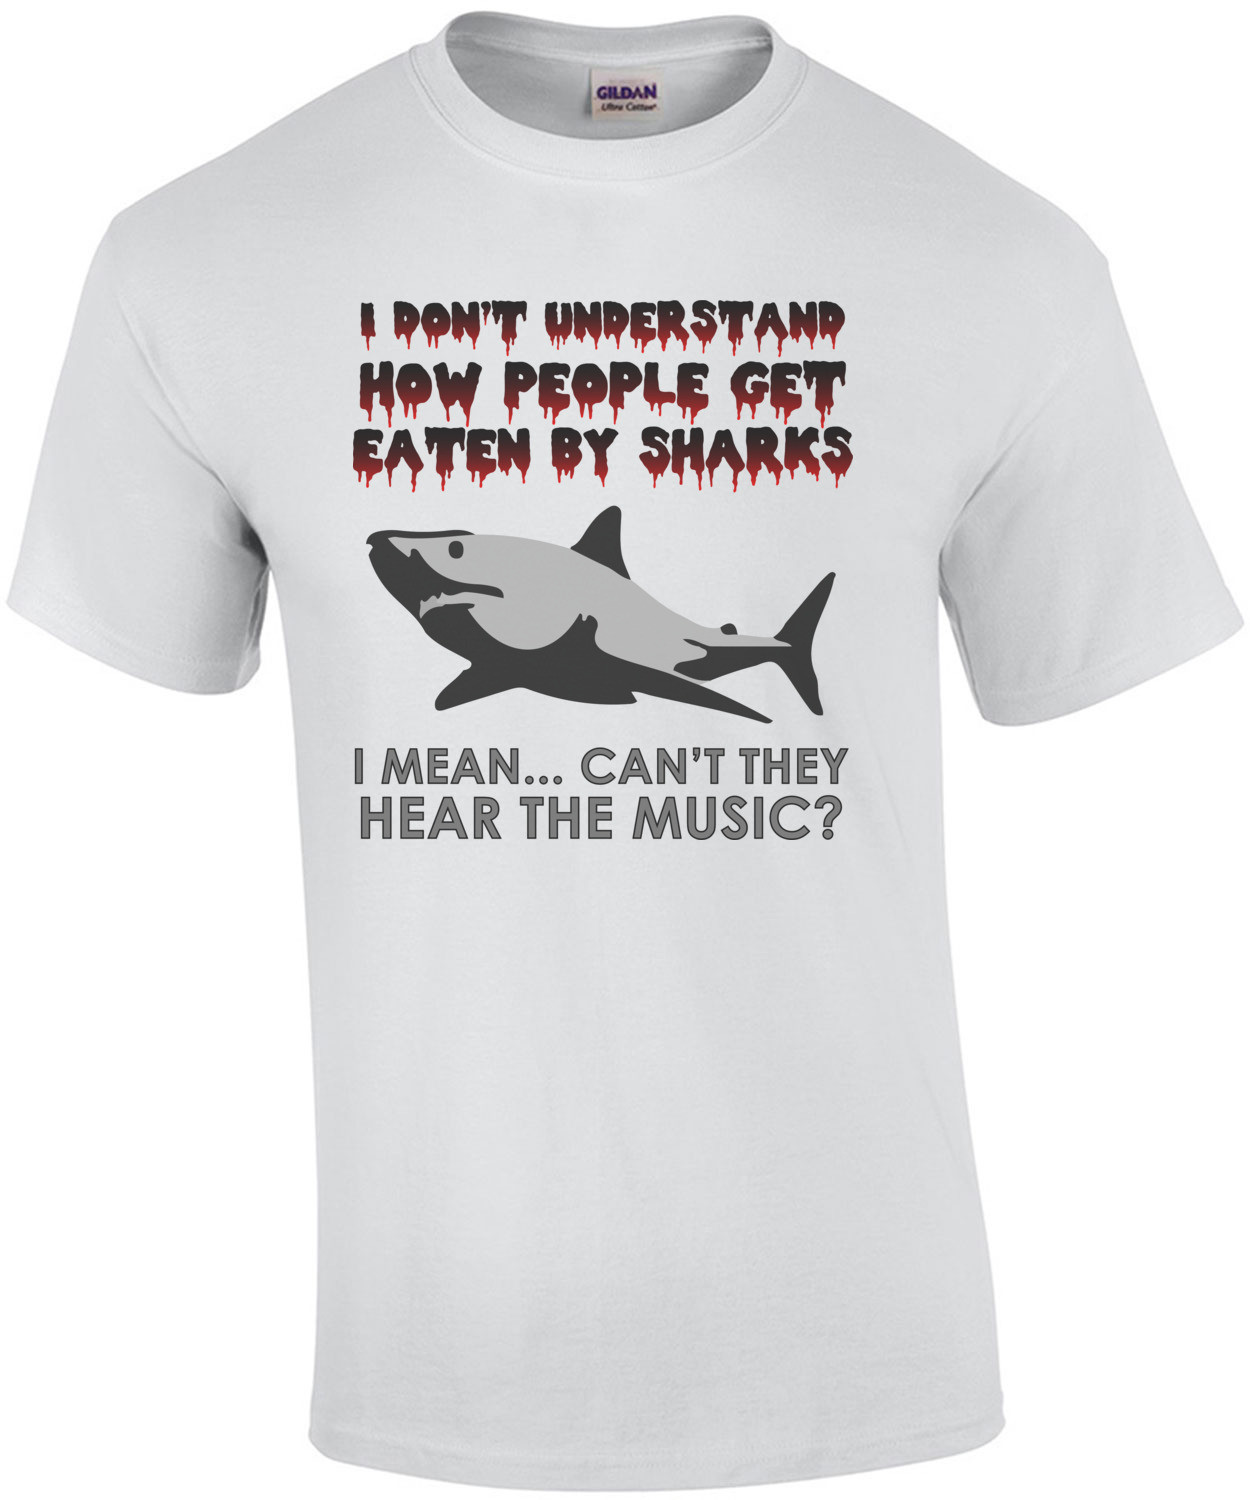 I don't understand how people get eaten by sharks - funny t-shirt